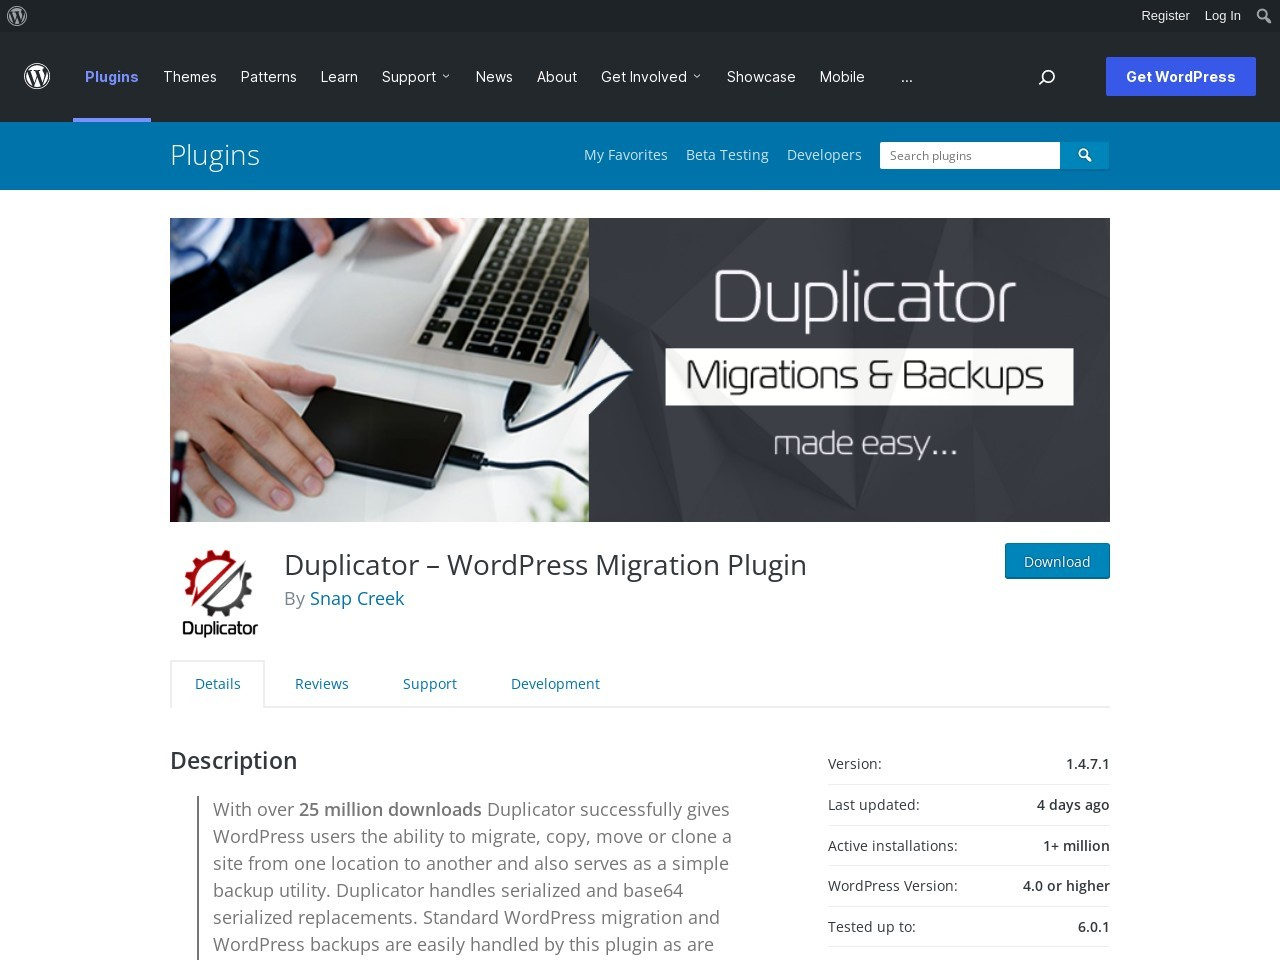 Duplicator - Duplicate, clone, backup, move and transfer an entire site from one location to another.